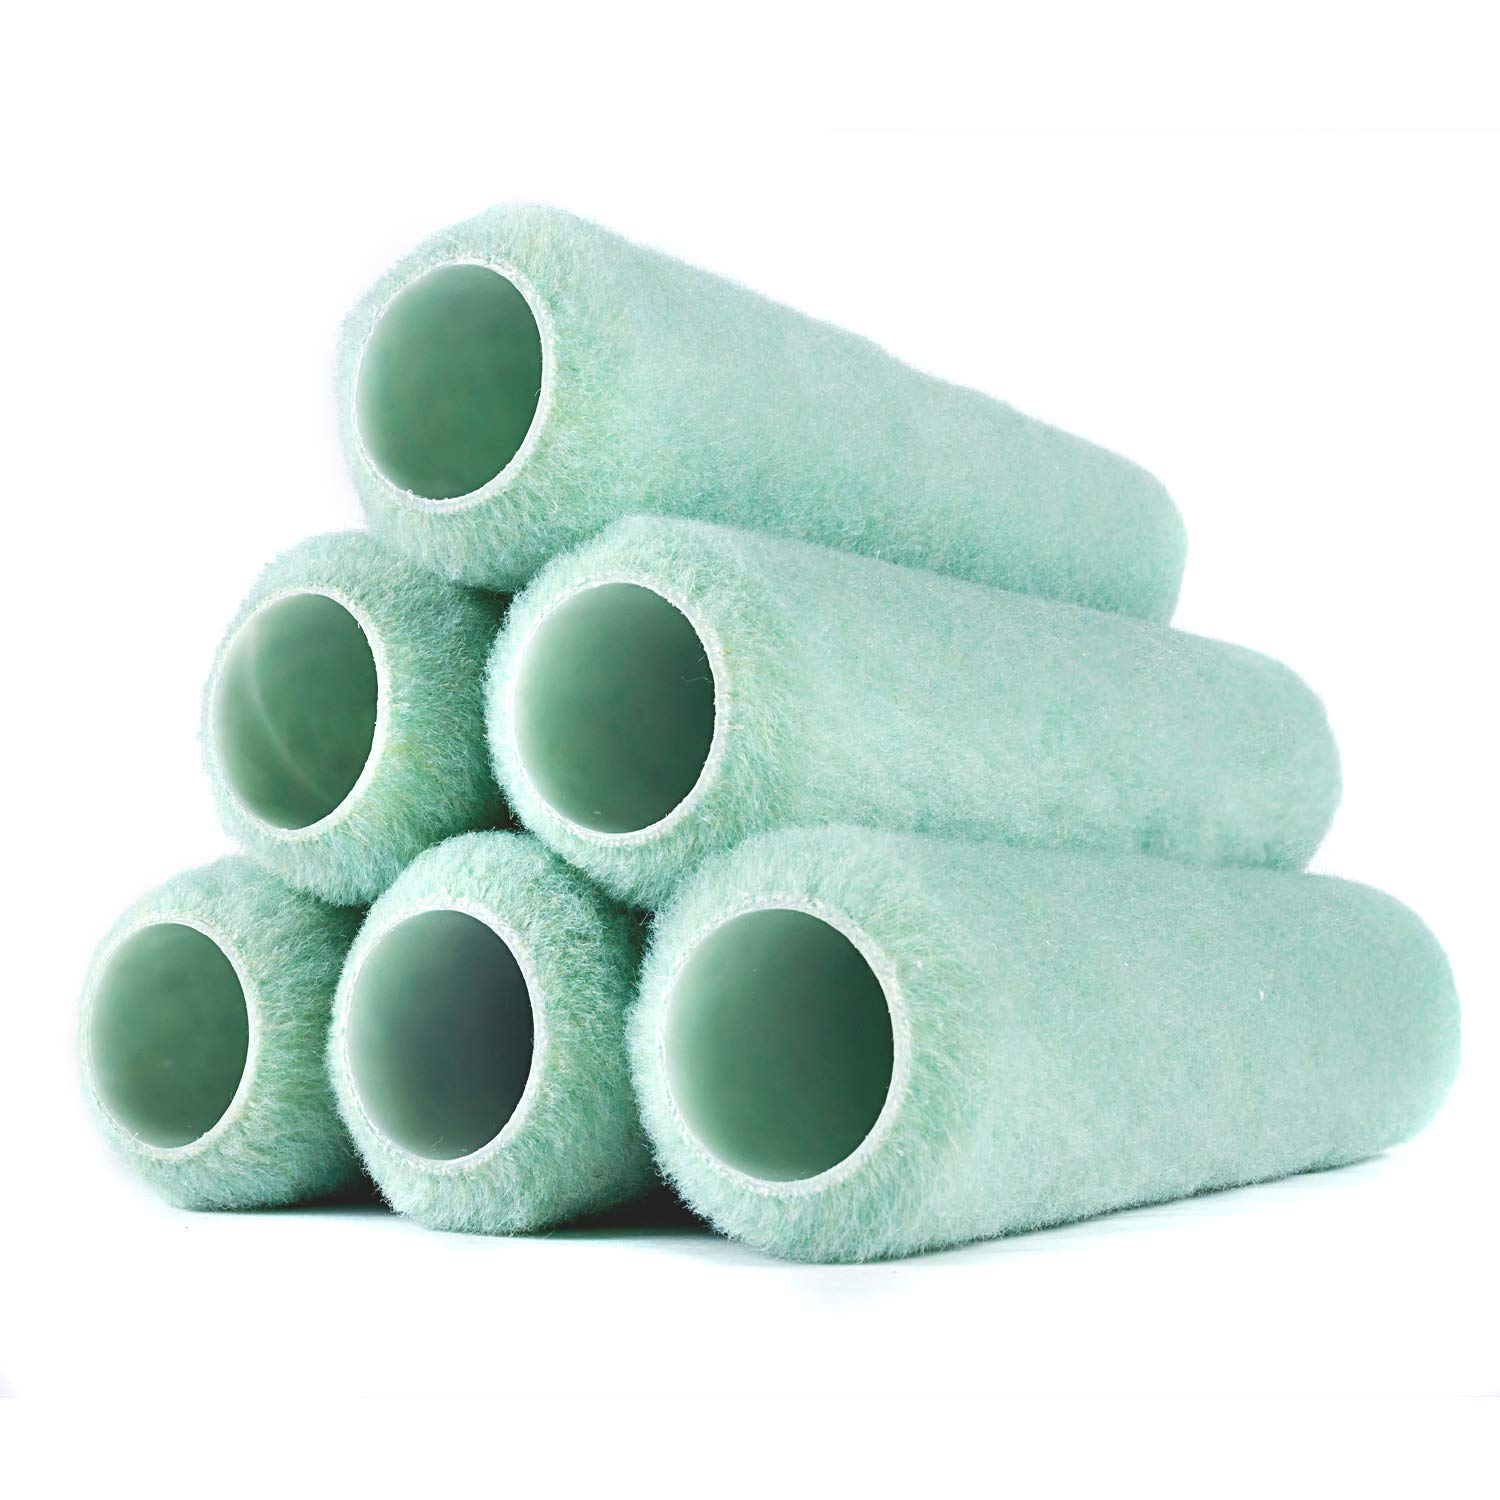 RollerLite (9AP038-6PK) Polyester Knit 9'' x 3/8'' - Standard Roller Covers (6-Pack) by Roller Lite